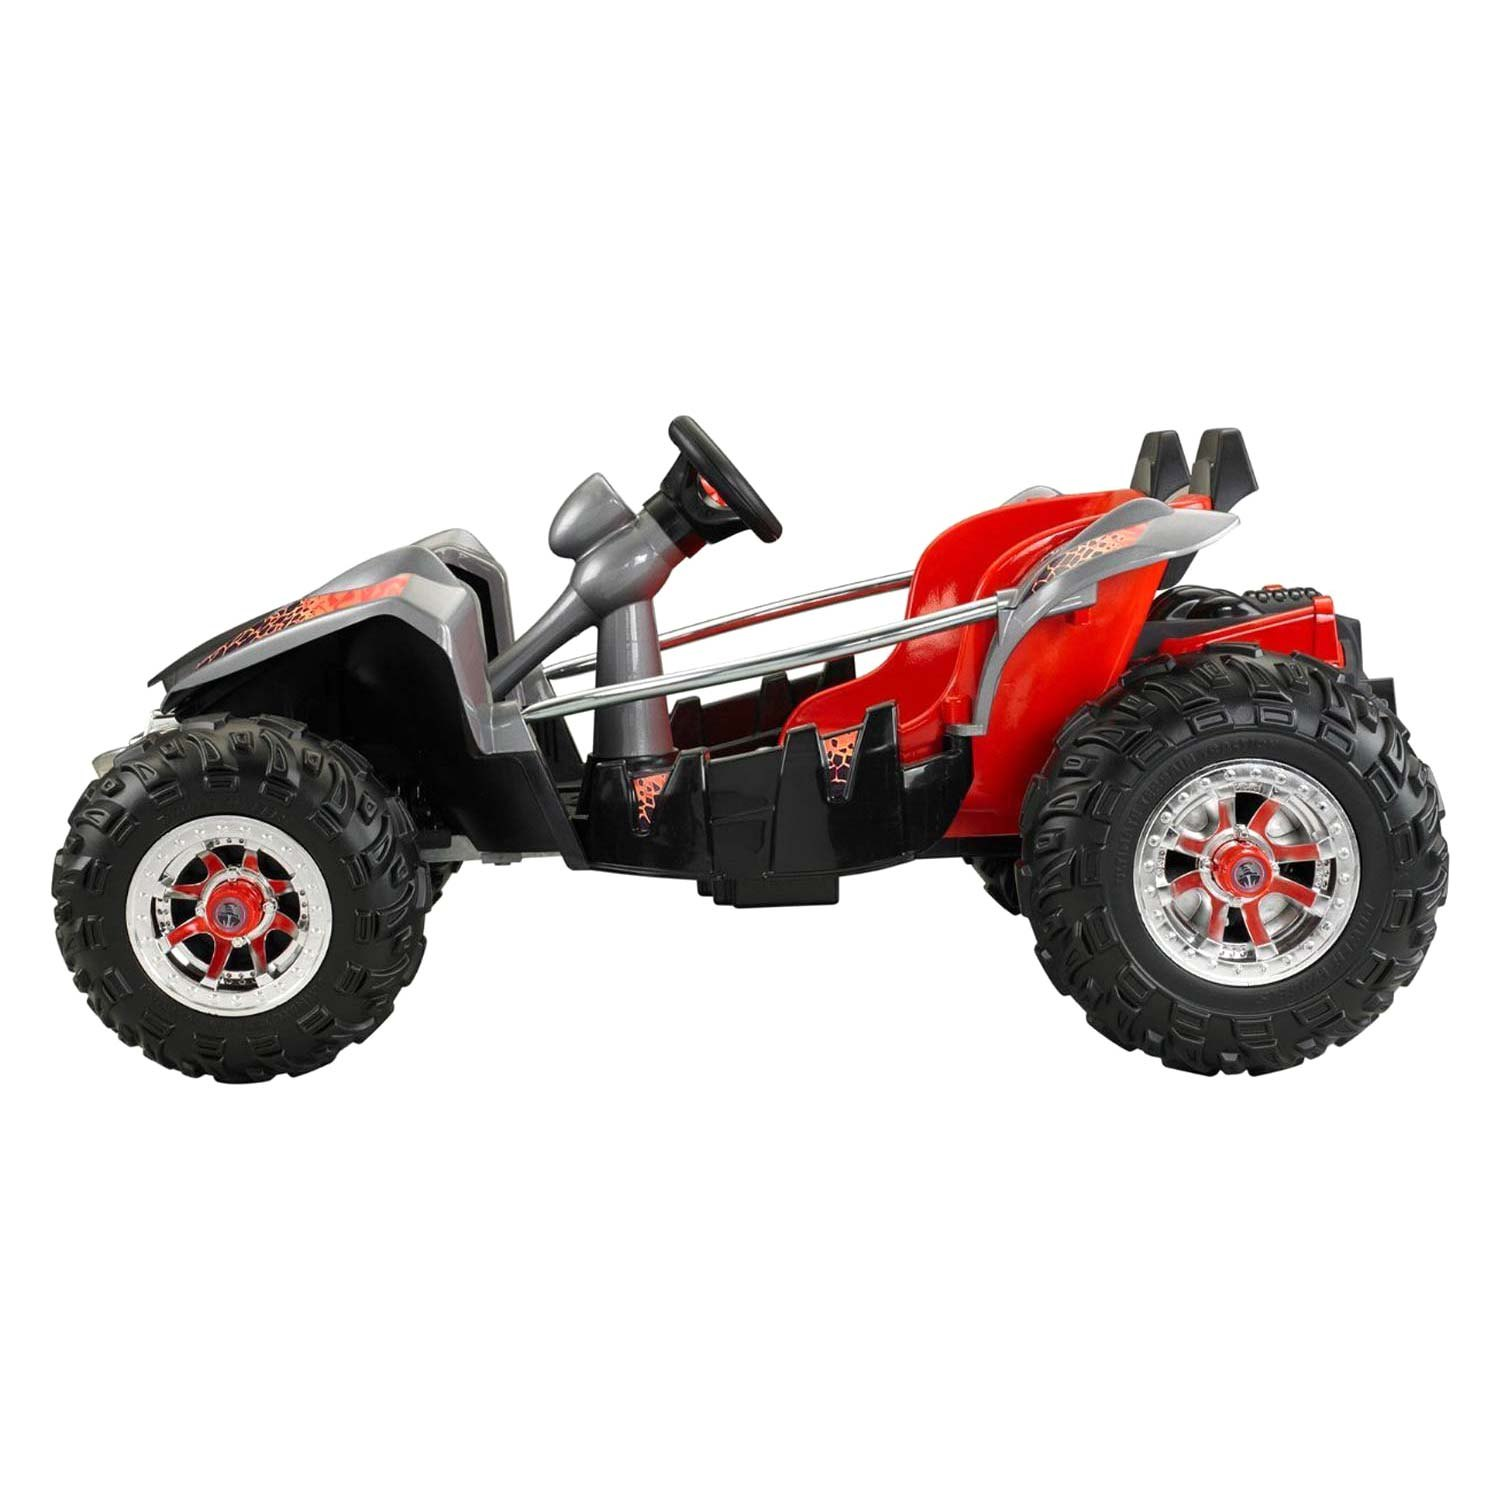 walmart gas powered go kart with Power Wheels Dune Racer Parts on 33290176 furthermore Power Wheels Dune Racer Parts besides 338684834450010997 besides 121178982682 together with 1.